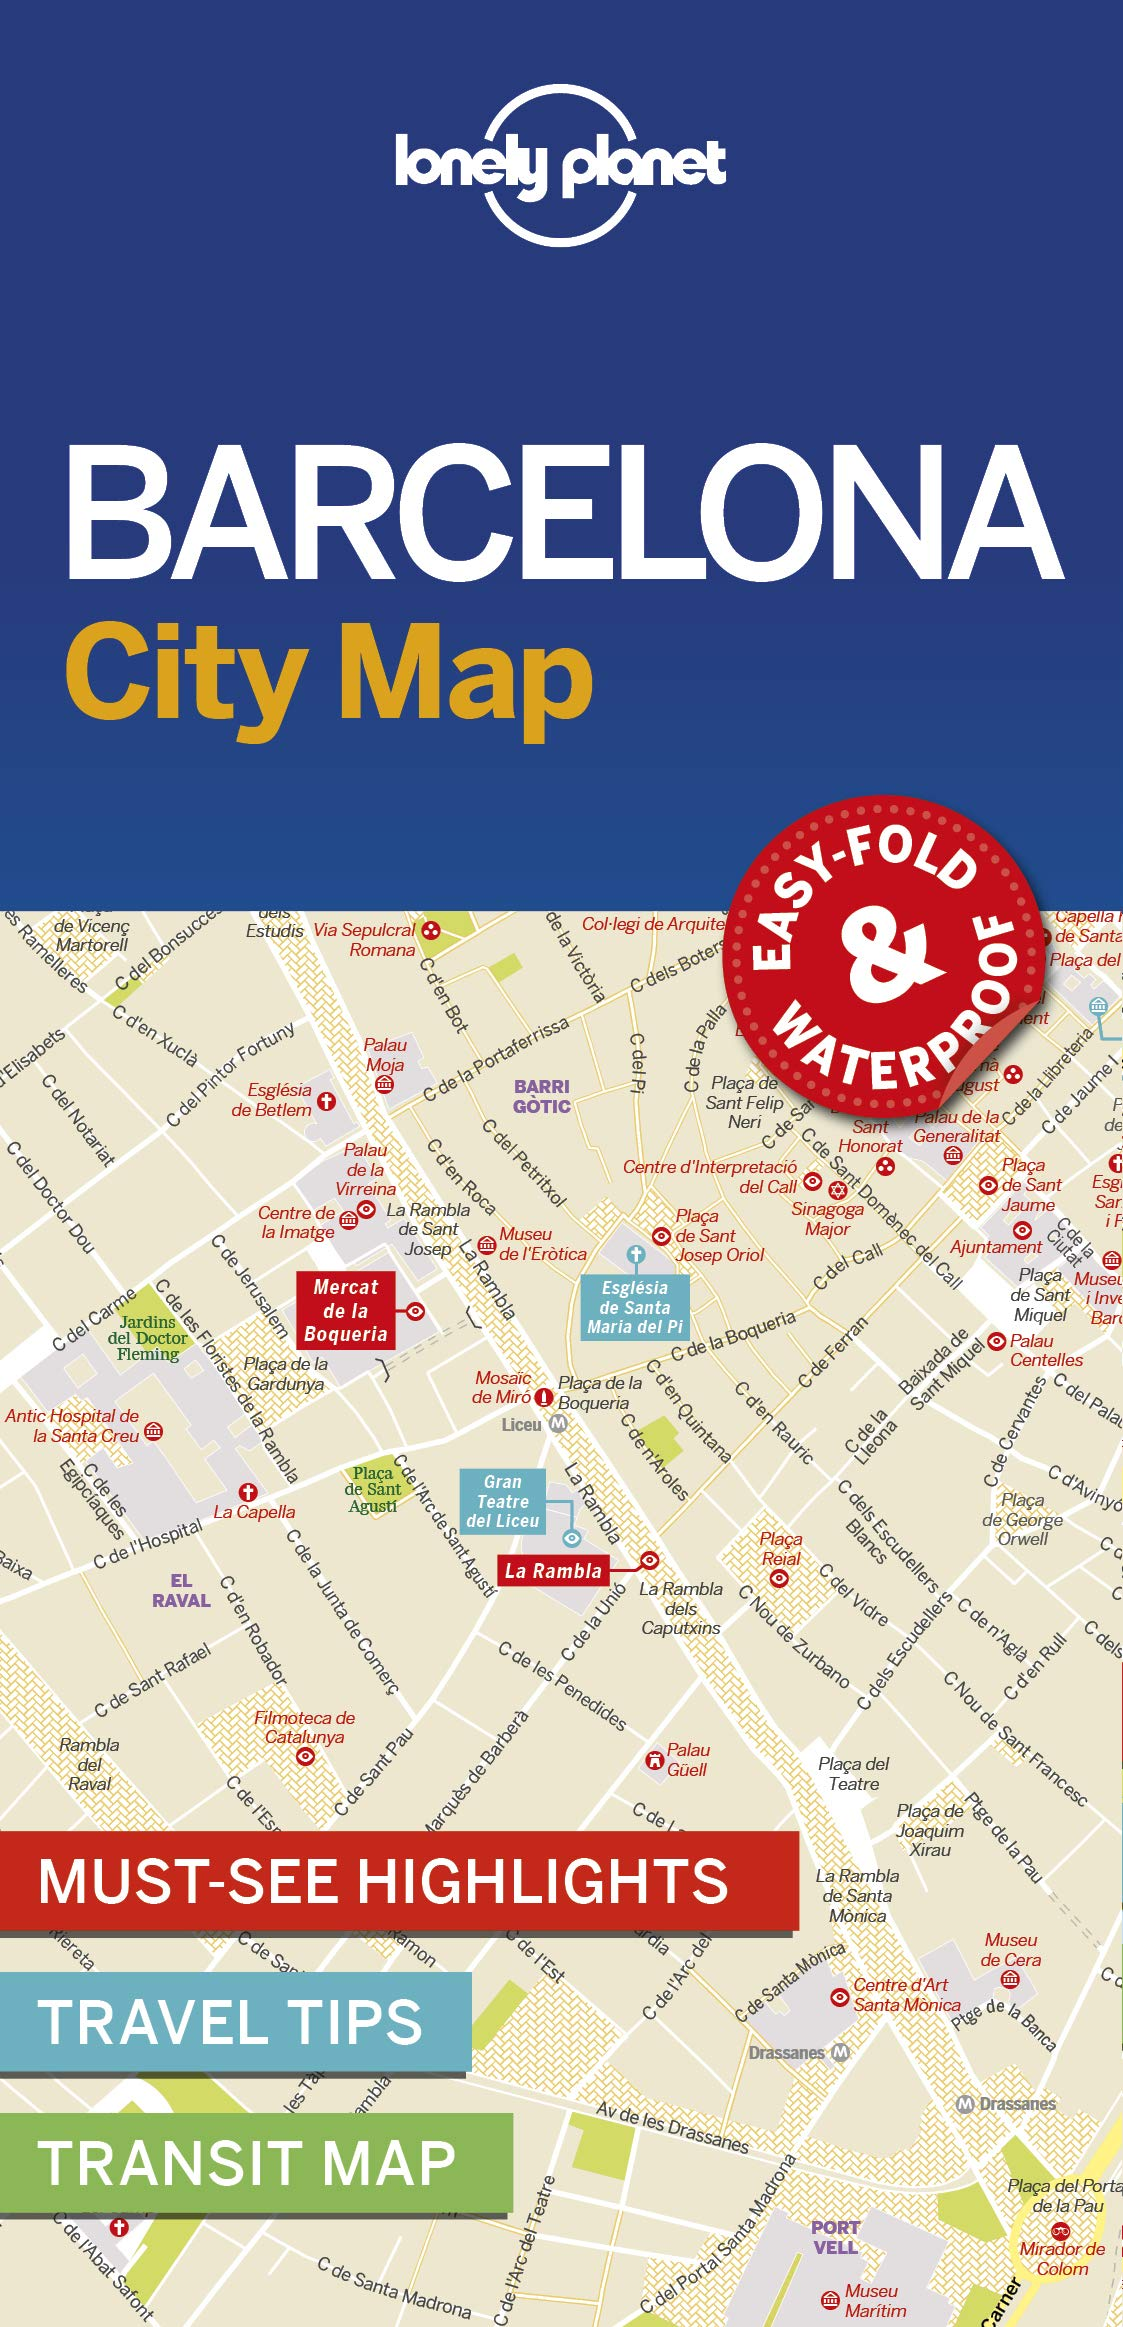 Lonely Planet Barcelona City Map Lonely Planet 9781786574107 Amazon Com Books